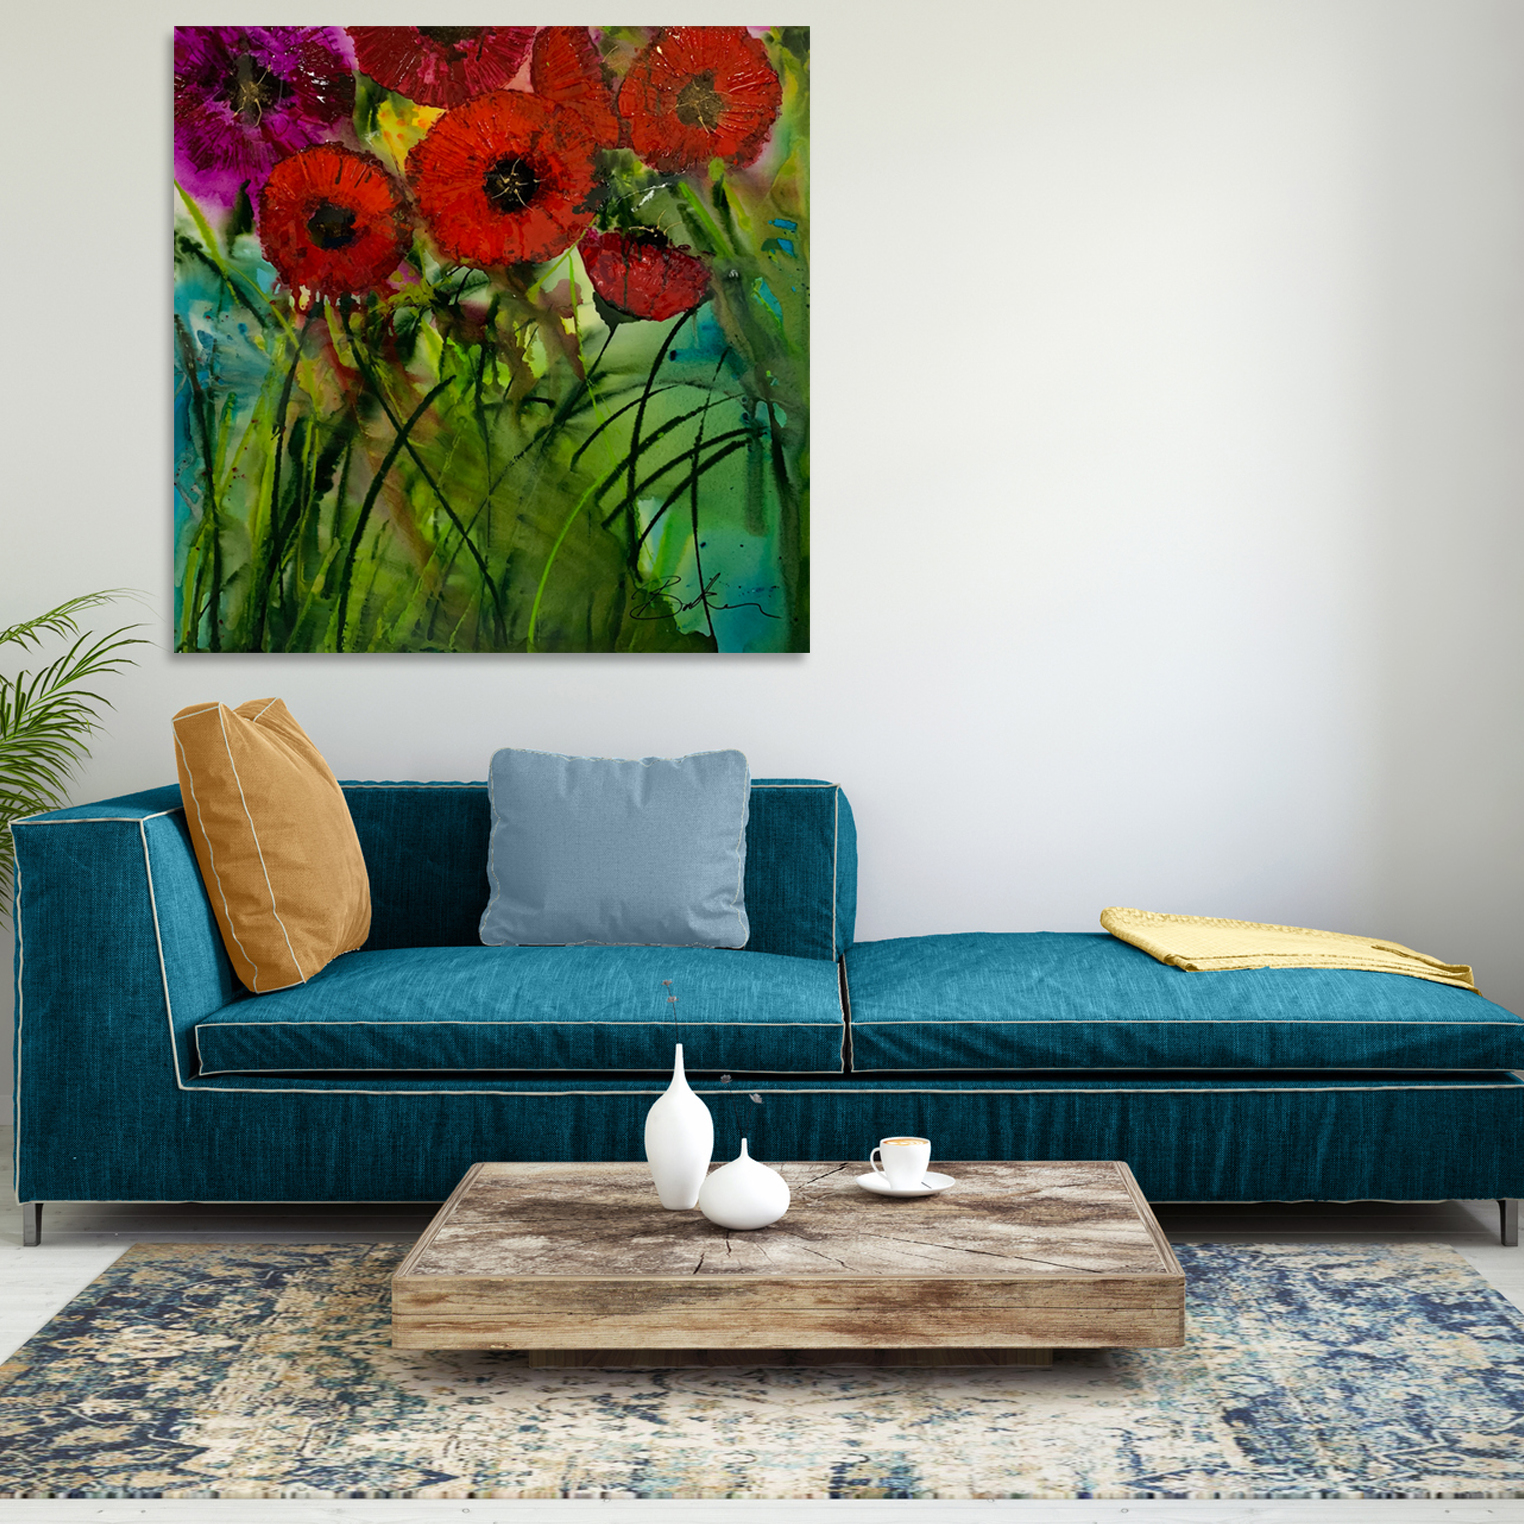 Abstract Poppy Paintings for sale by Australian artists Nicole Baker & Jessica Skye Baker